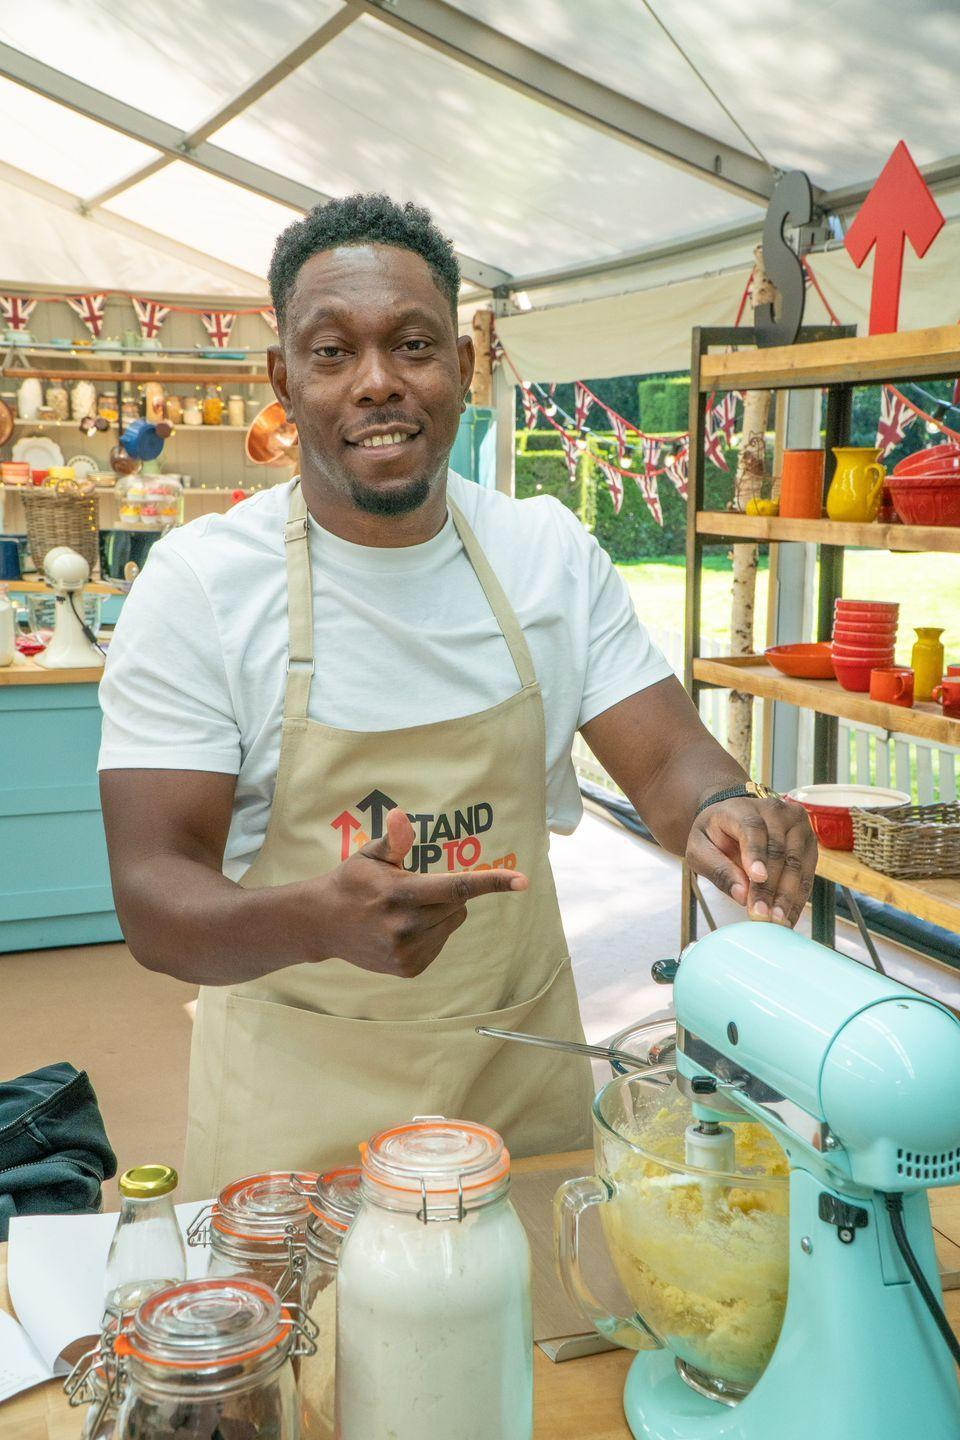 <p>Real name Dylan Kwabena Mills MBE, Dizzee Rascal is an MC, rapper, songwriter and record producer.</p>